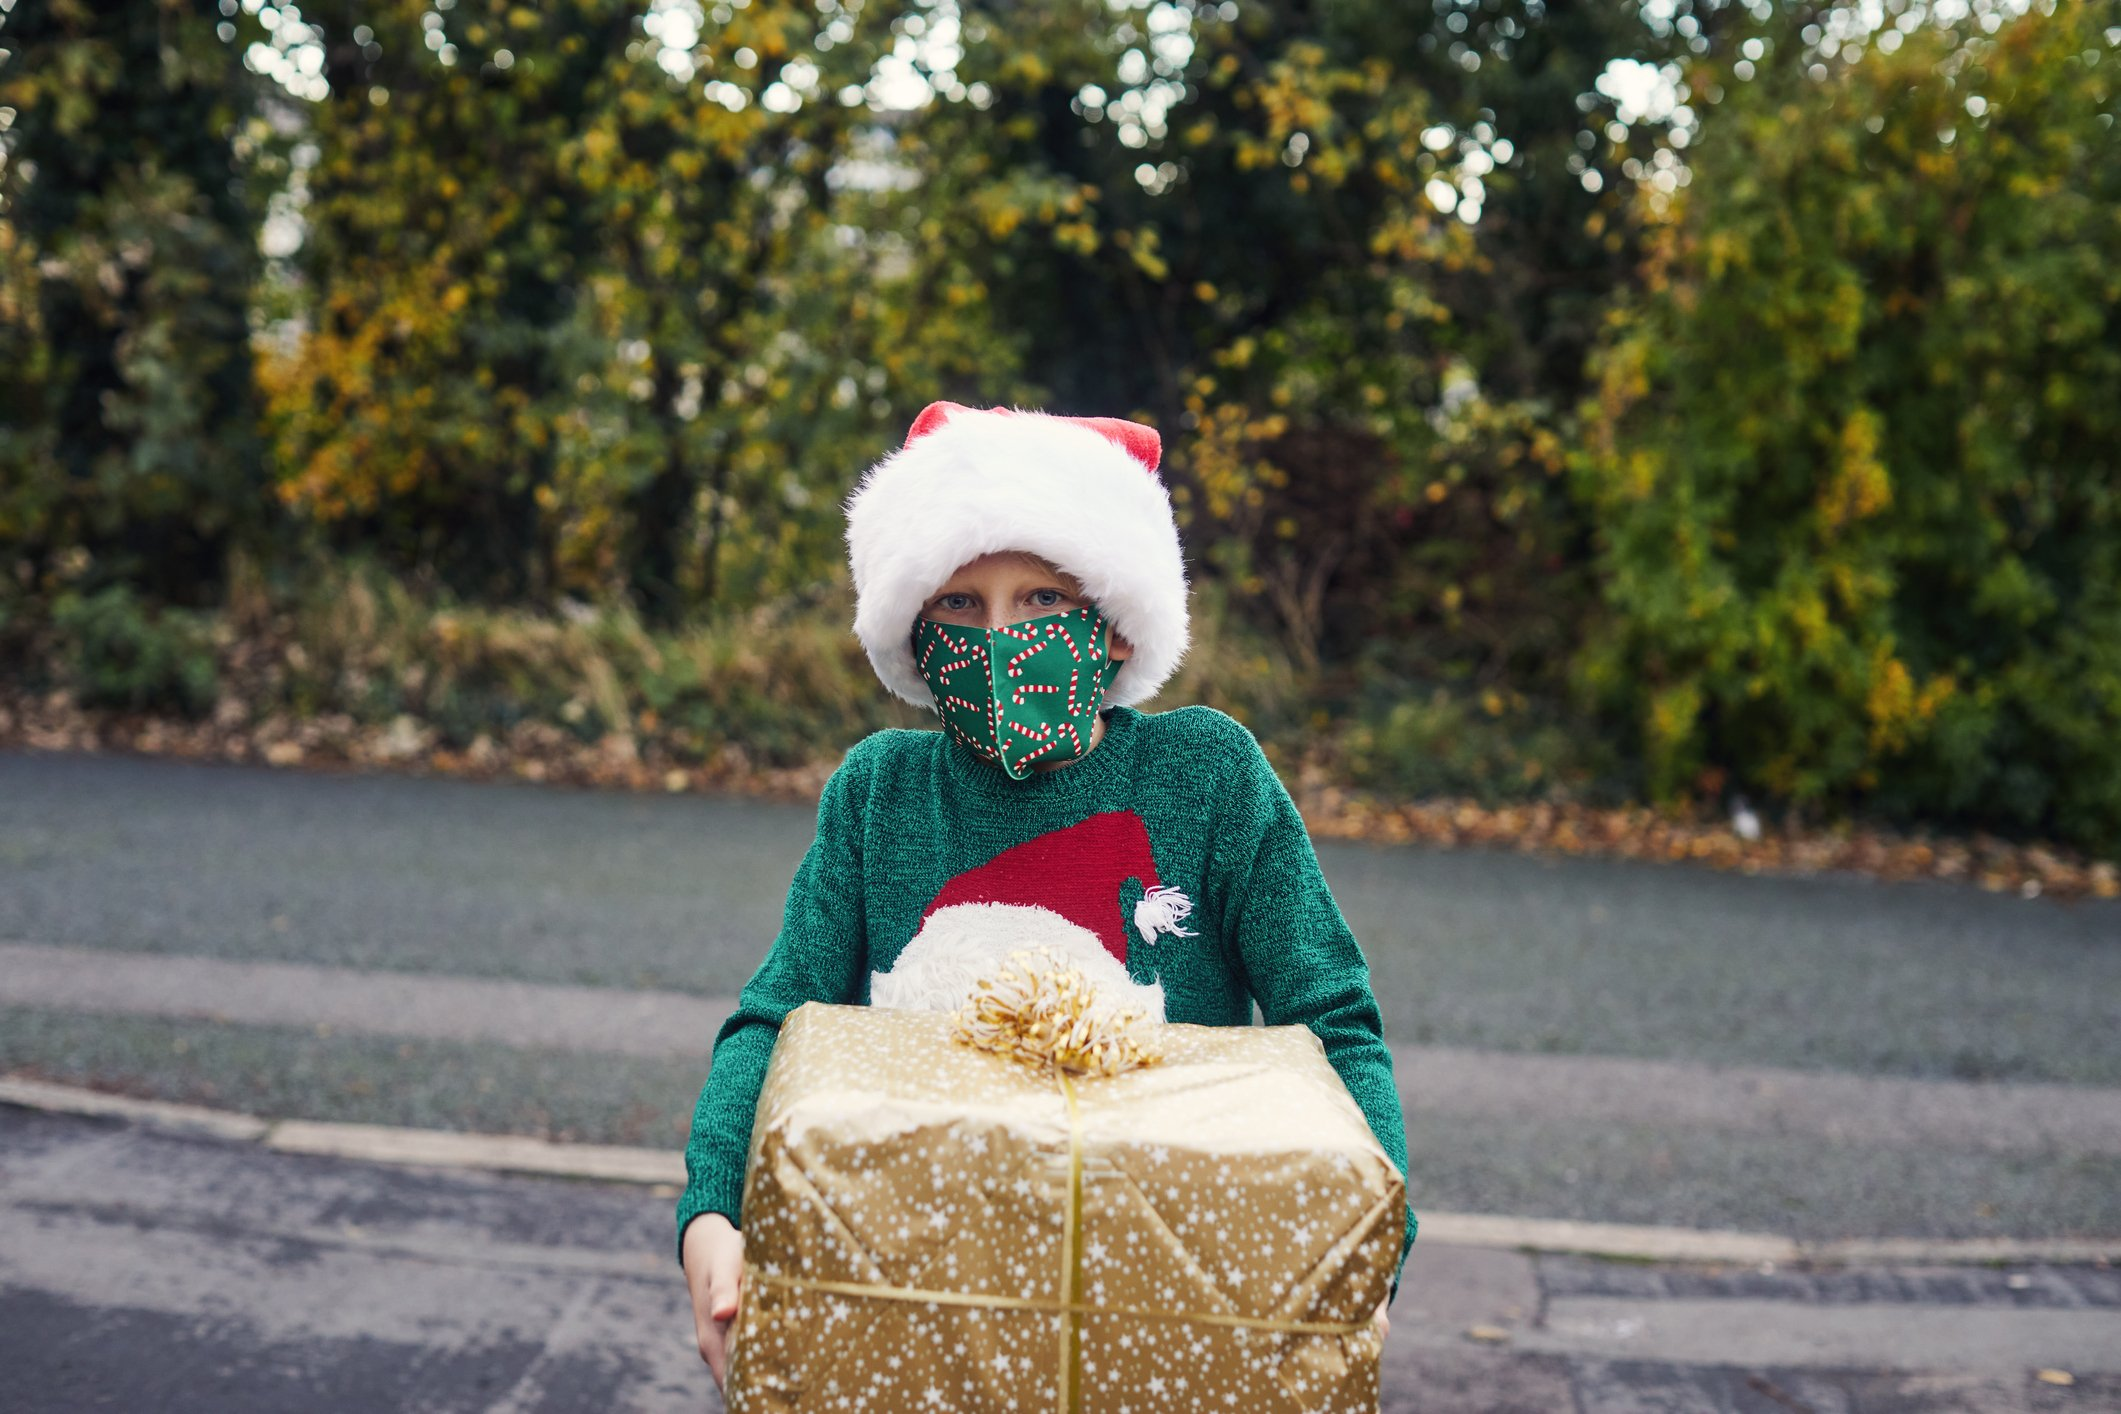 A boy on a Christmas hat and a facemask holding a Christmas present. | Photo: Getty Images